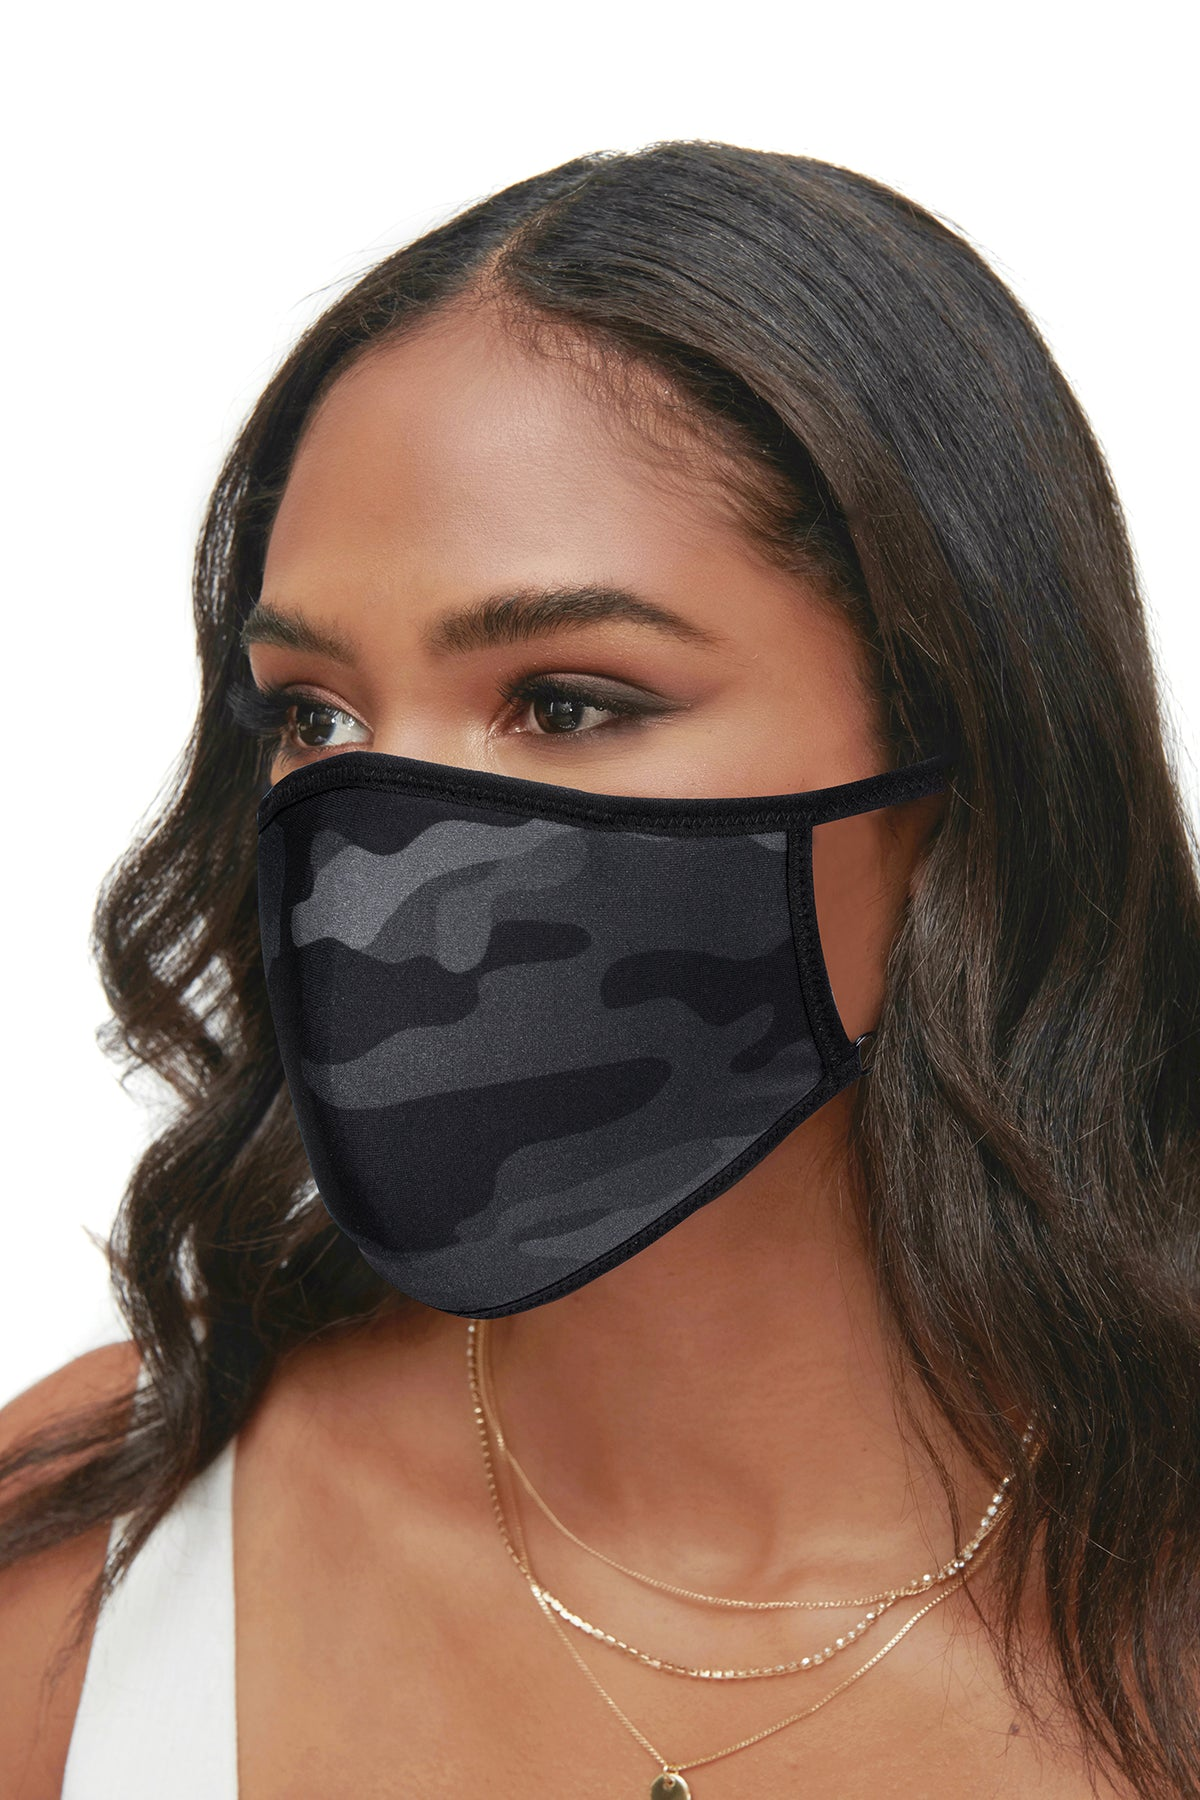 Protective Face Mask - Assorted 3 Piece Pack - Solid Black / Black Snake / Black Camo